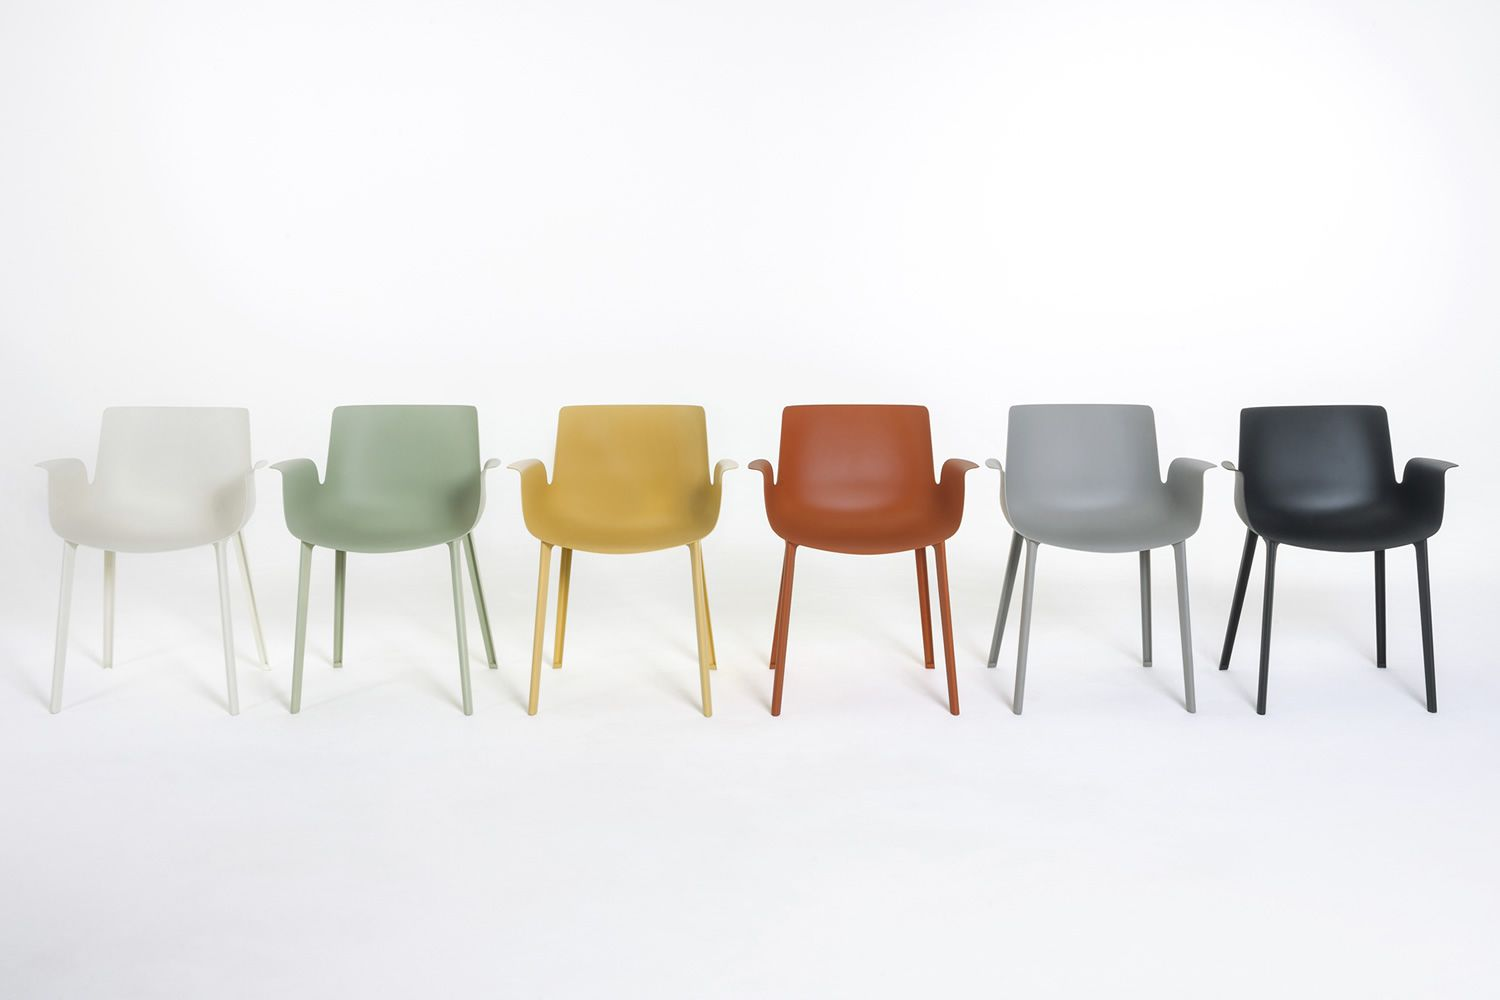 Piuma sedia kartell di design in tecnopolimero for Kartell ufficio